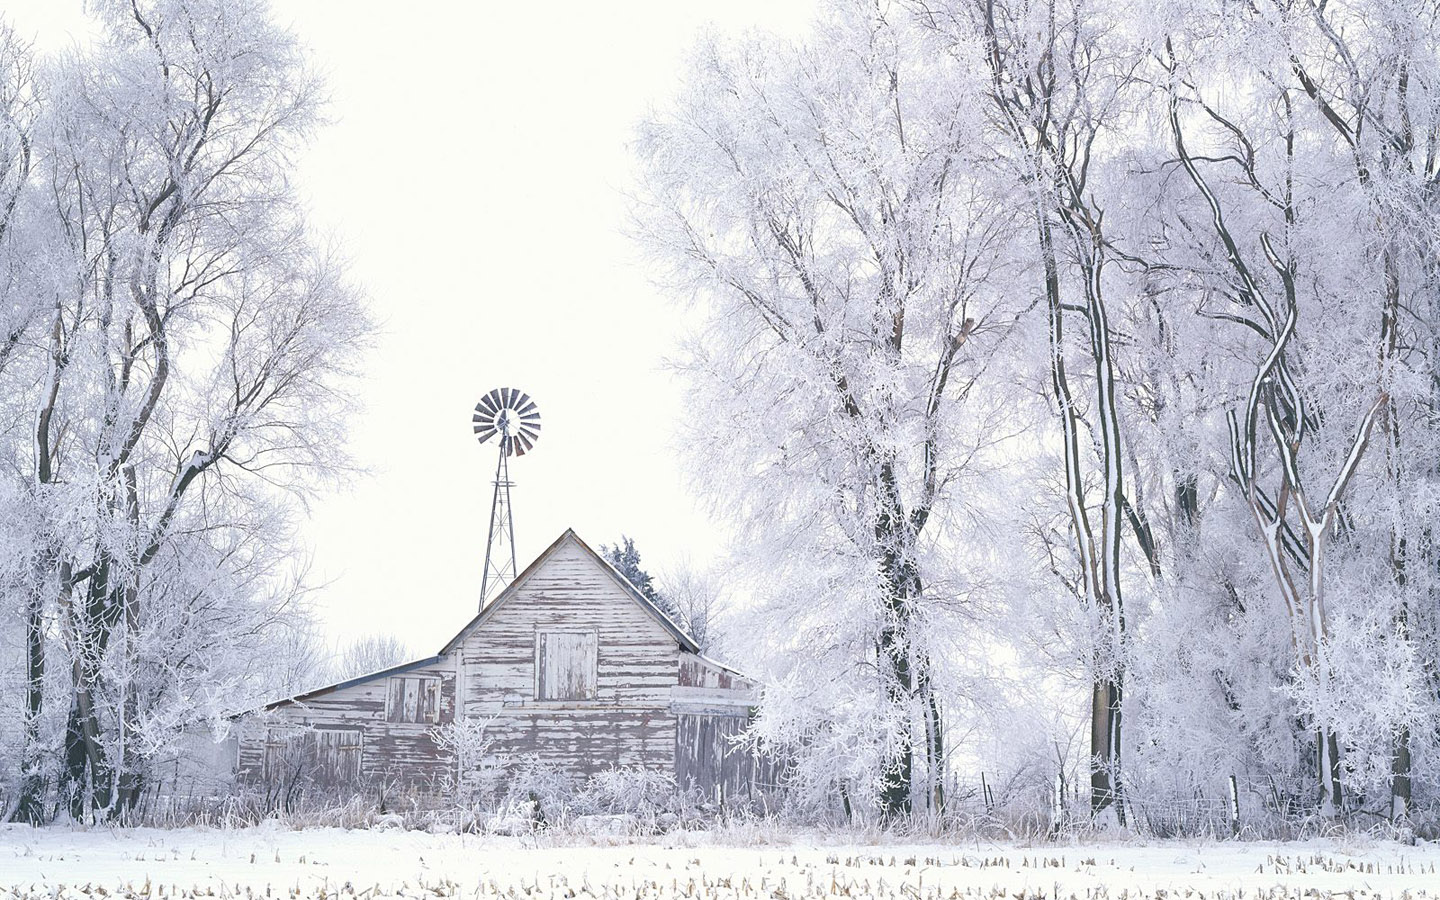 Pencil Drawing Winter Image Wallpapers Hd Free